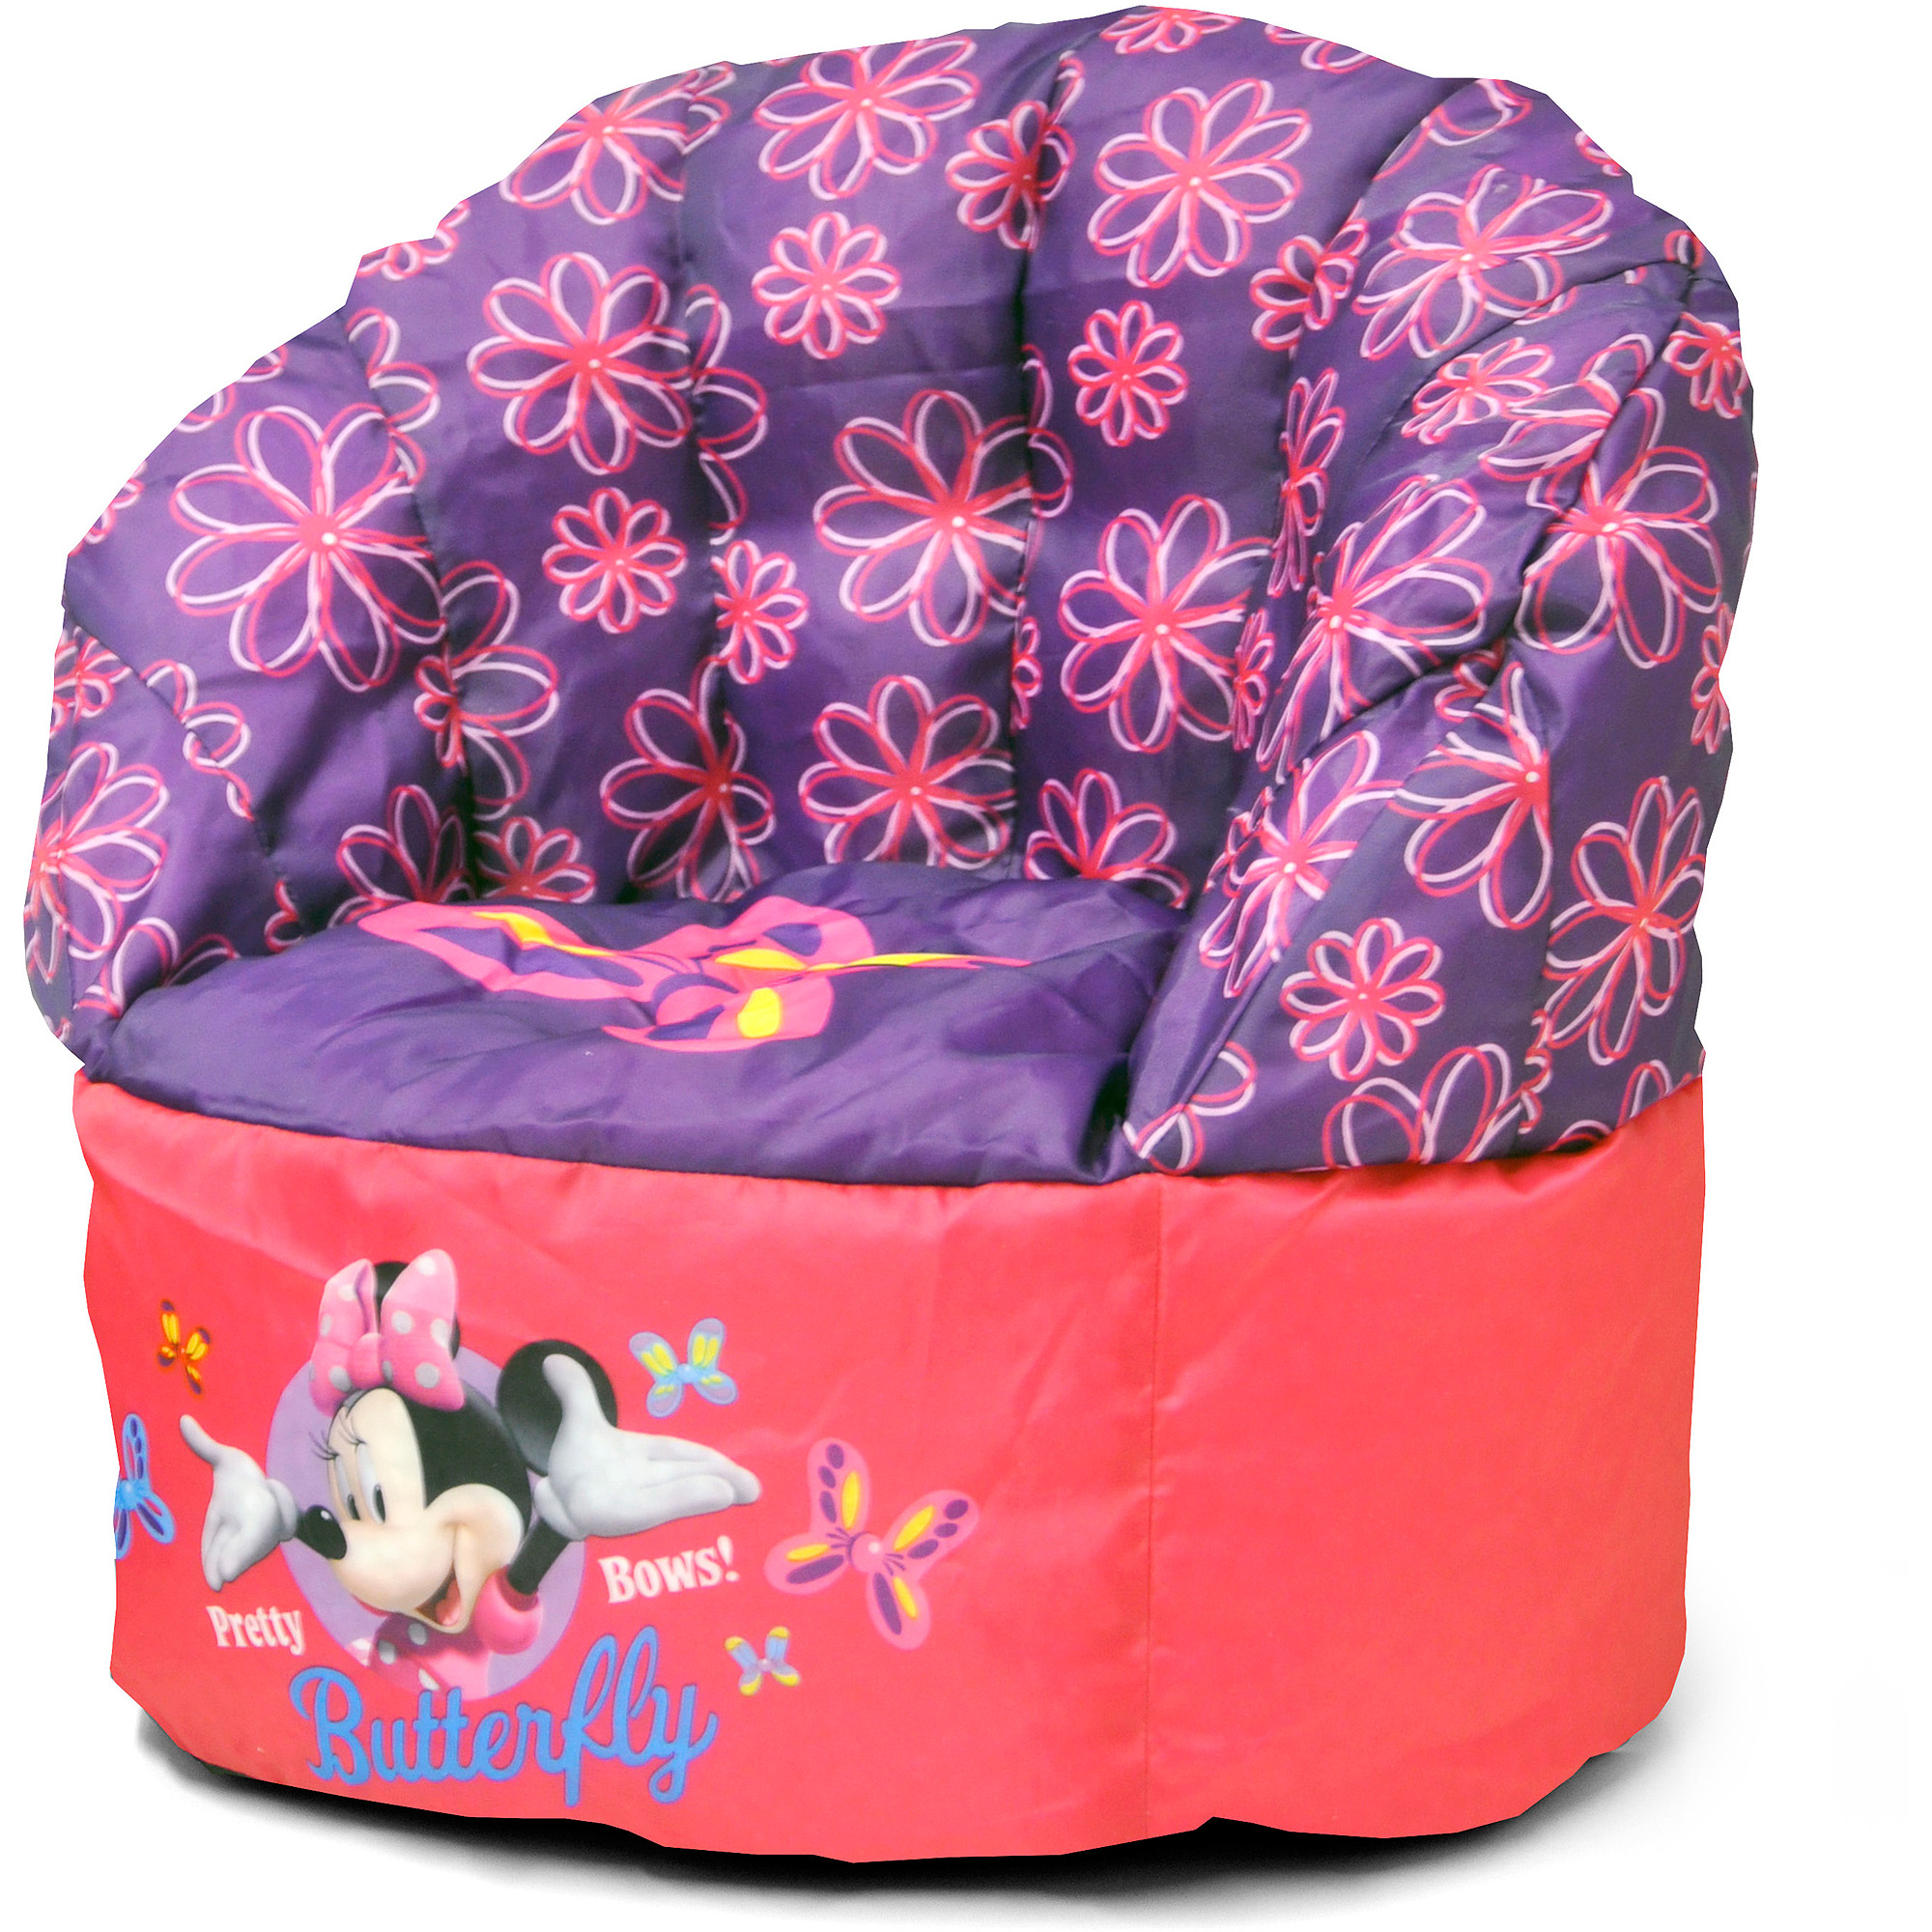 Disney Minnie Mouse Bean Bag Chair